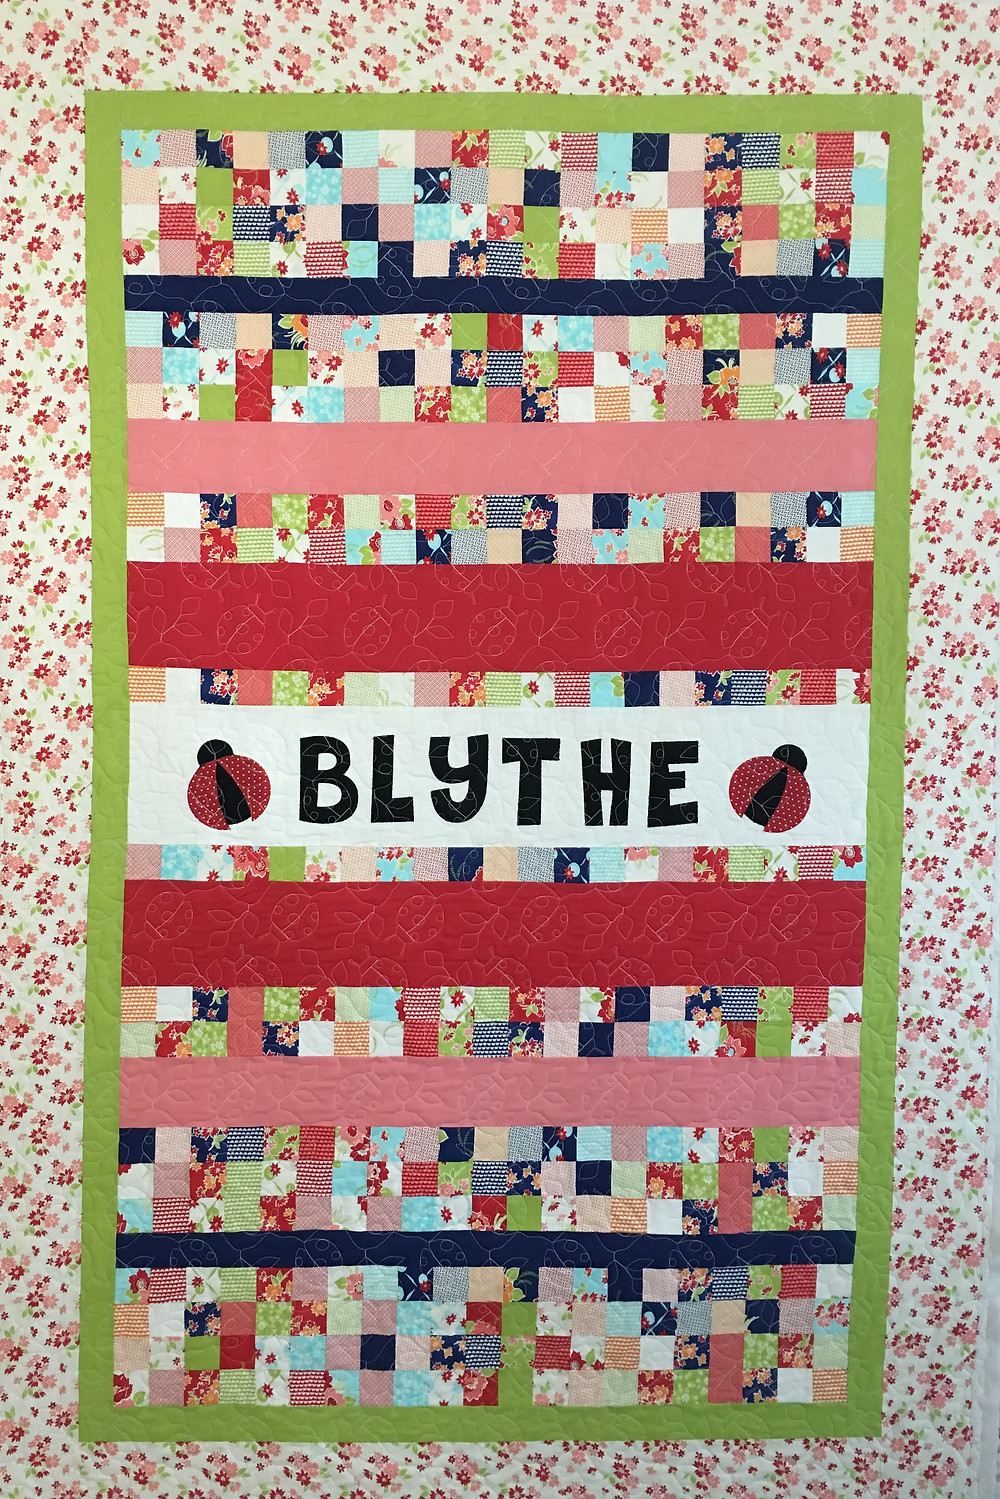 Baby Quilt for Blythe by Leanne Strum